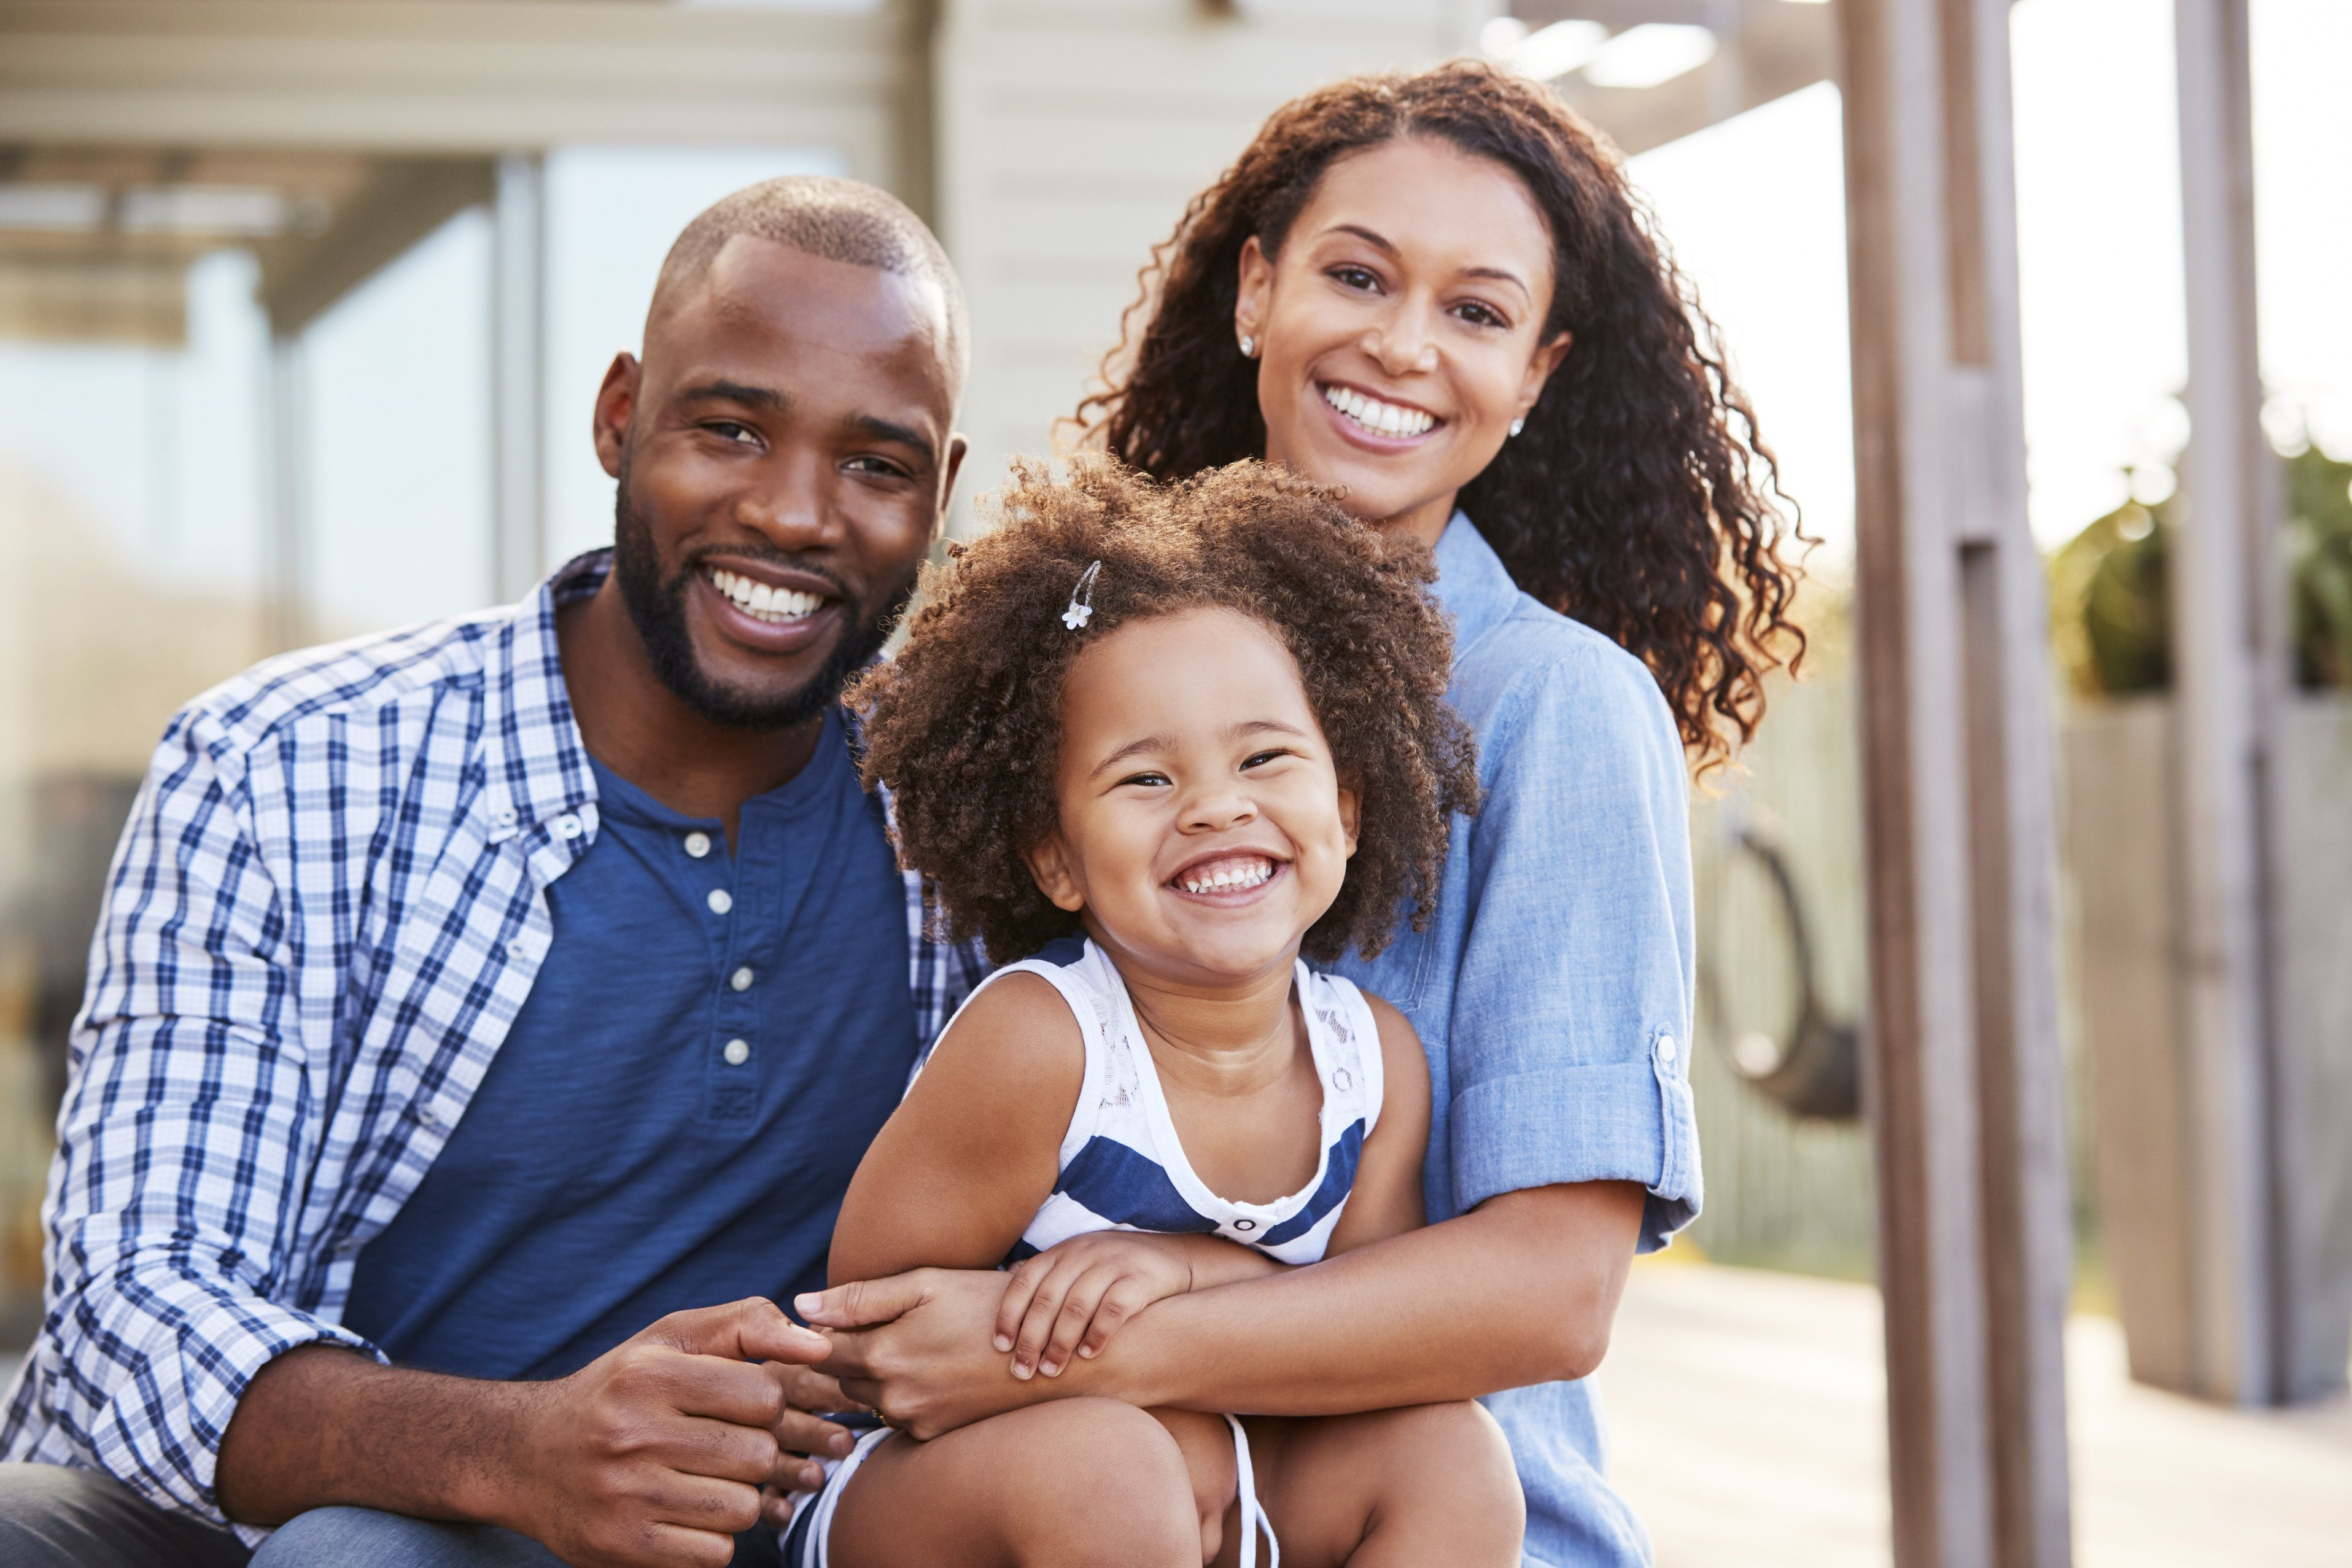 How to choose a family friendly home family stock photo